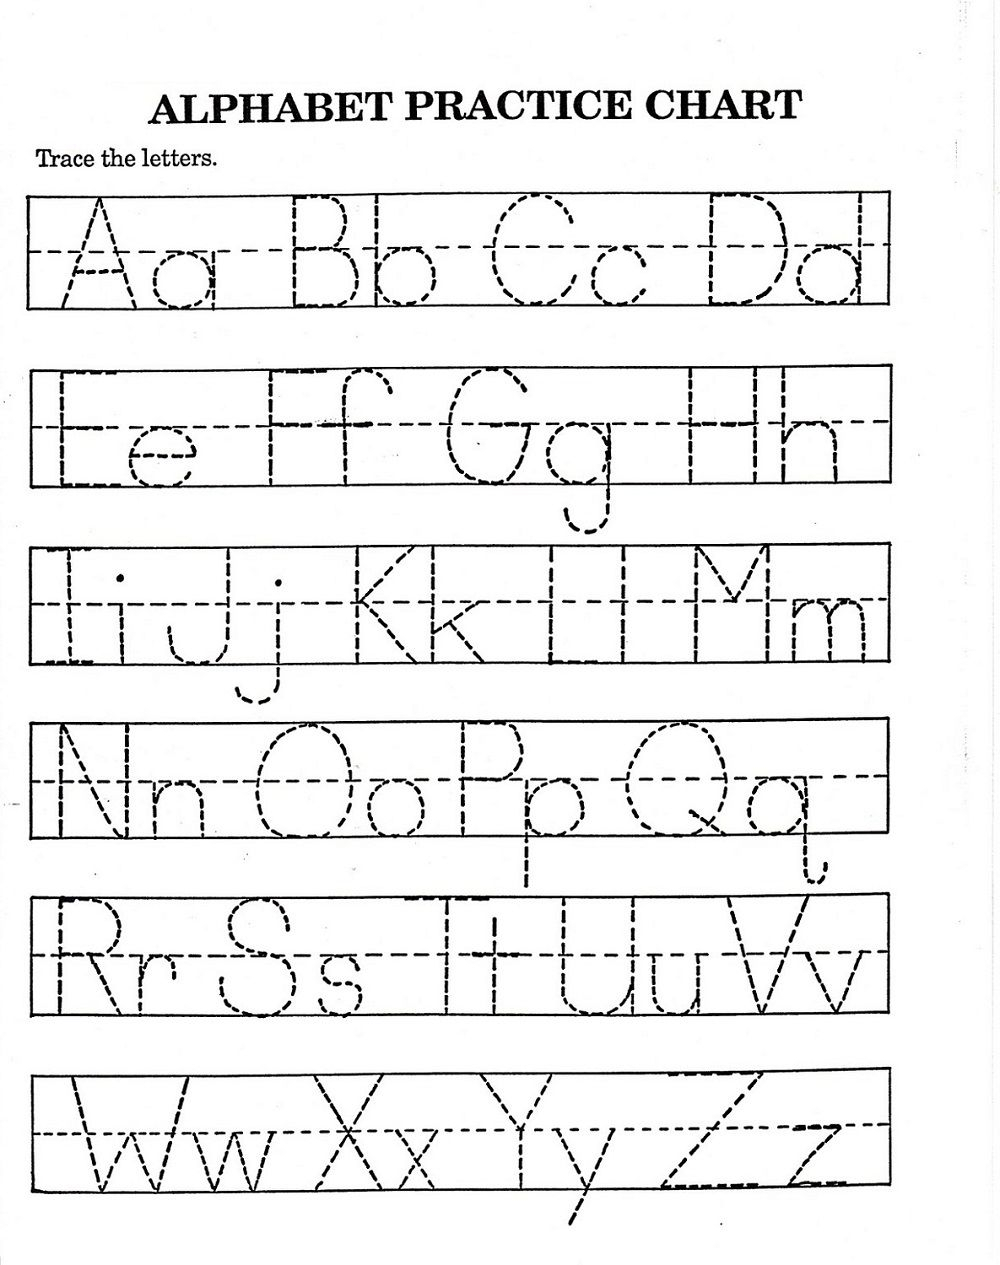 Traceable Alphabet Worksheets A-Z | Printable Alphabet in Alphabet Worksheets A-Z